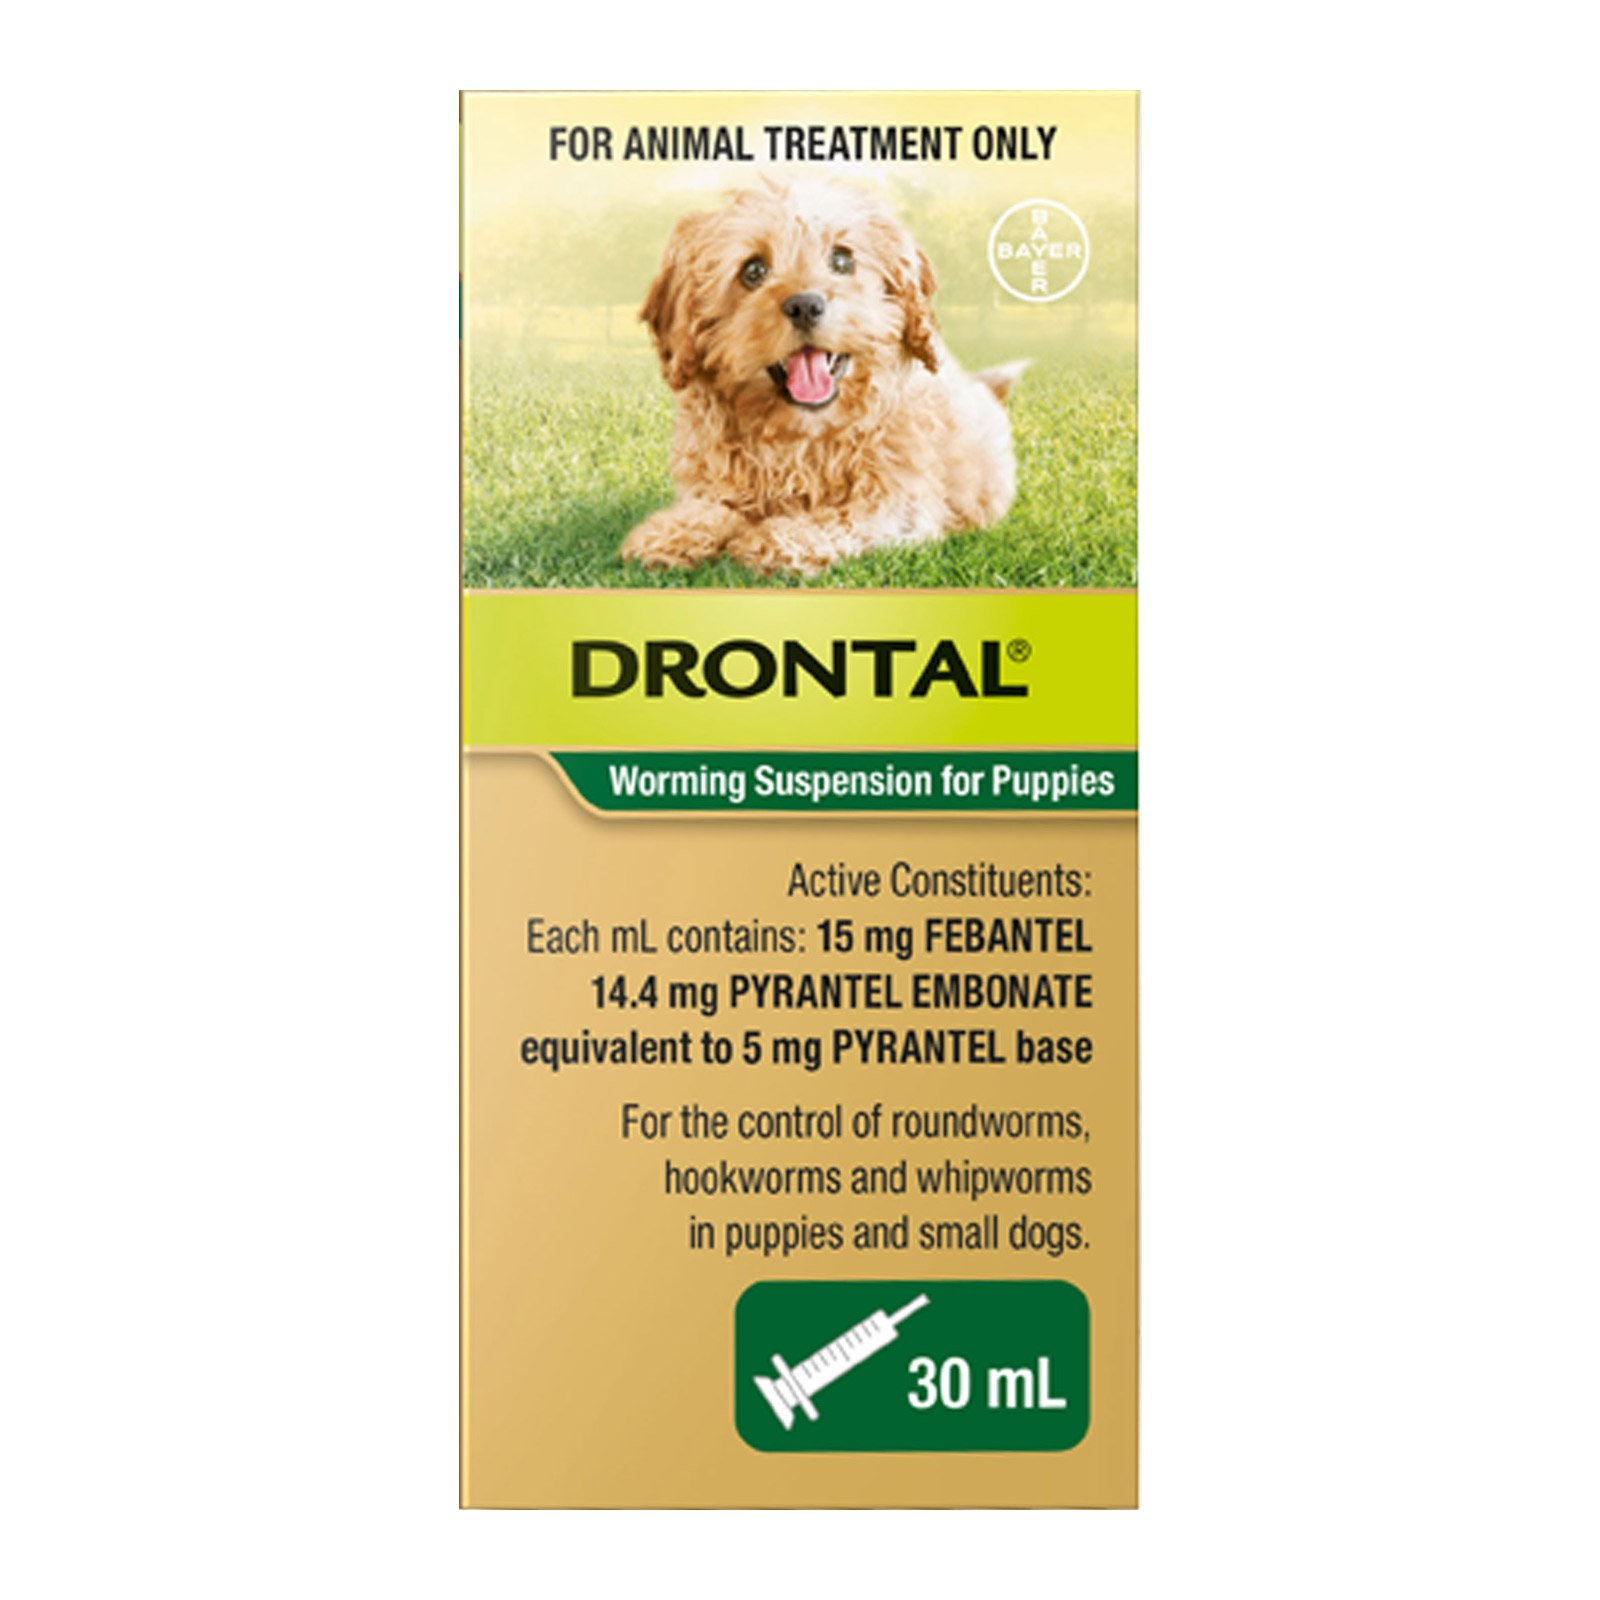 drontal-drontal-wormers-for-puppies-big.jpg